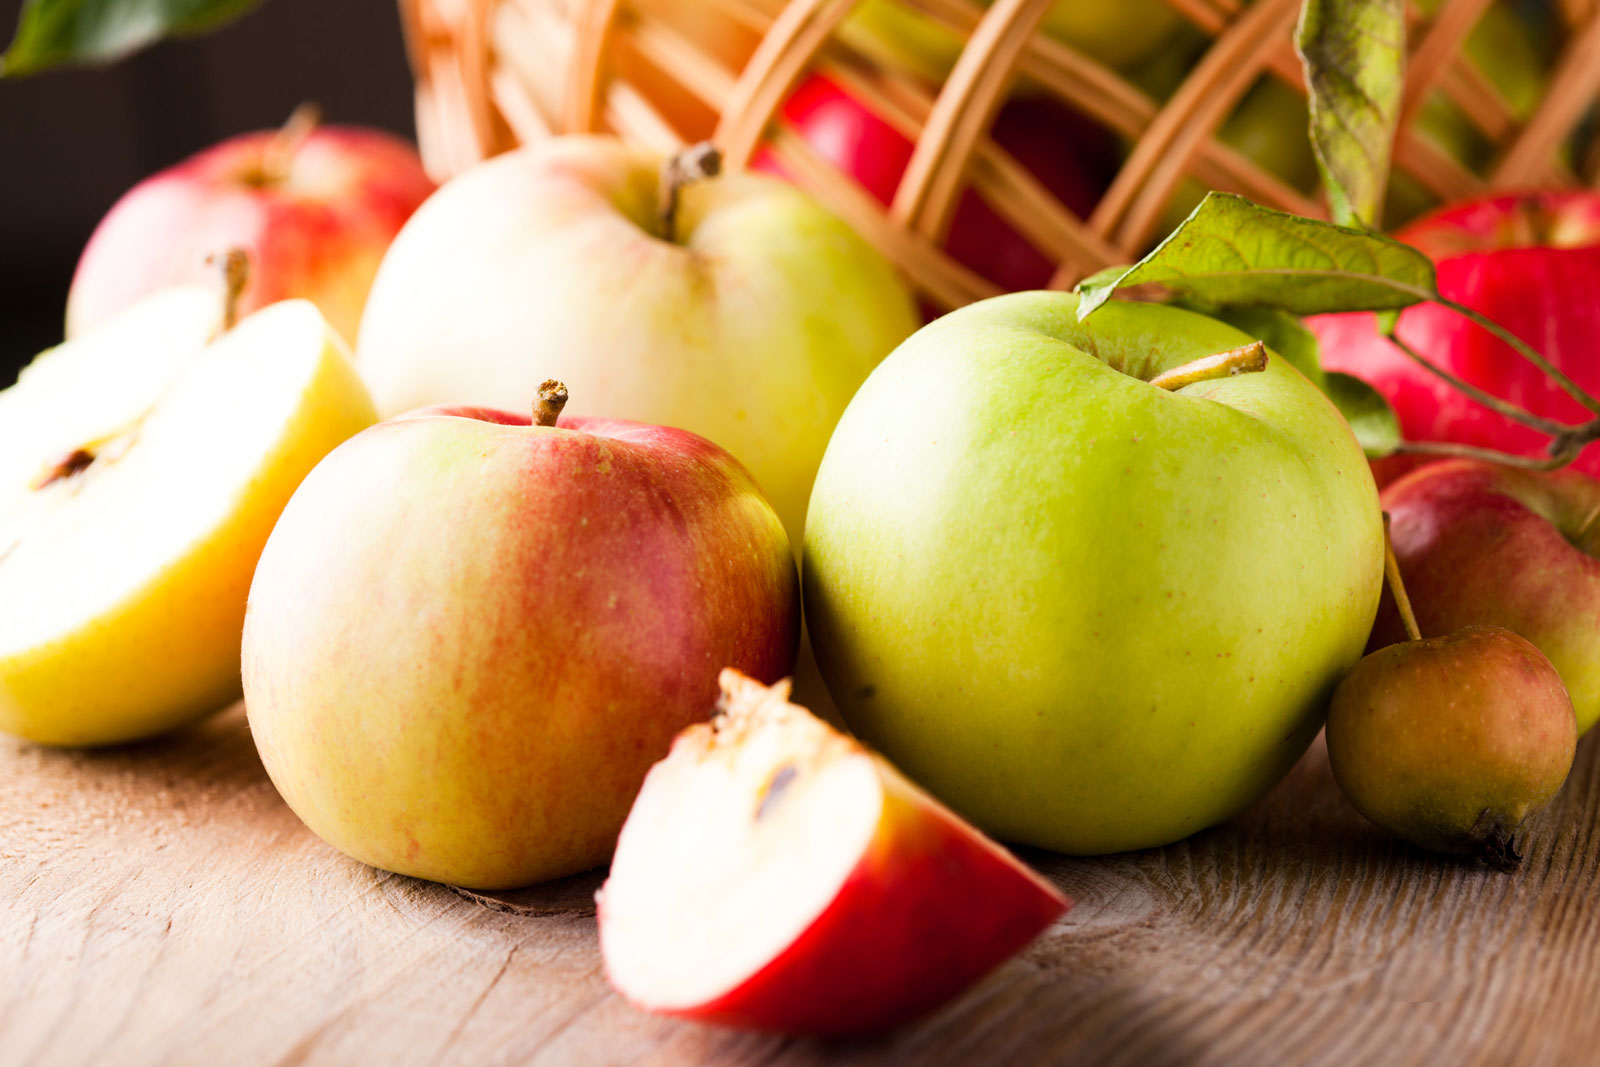 Apples | The Best Fruits and Vegetables for Juicing With 3 Ingredients